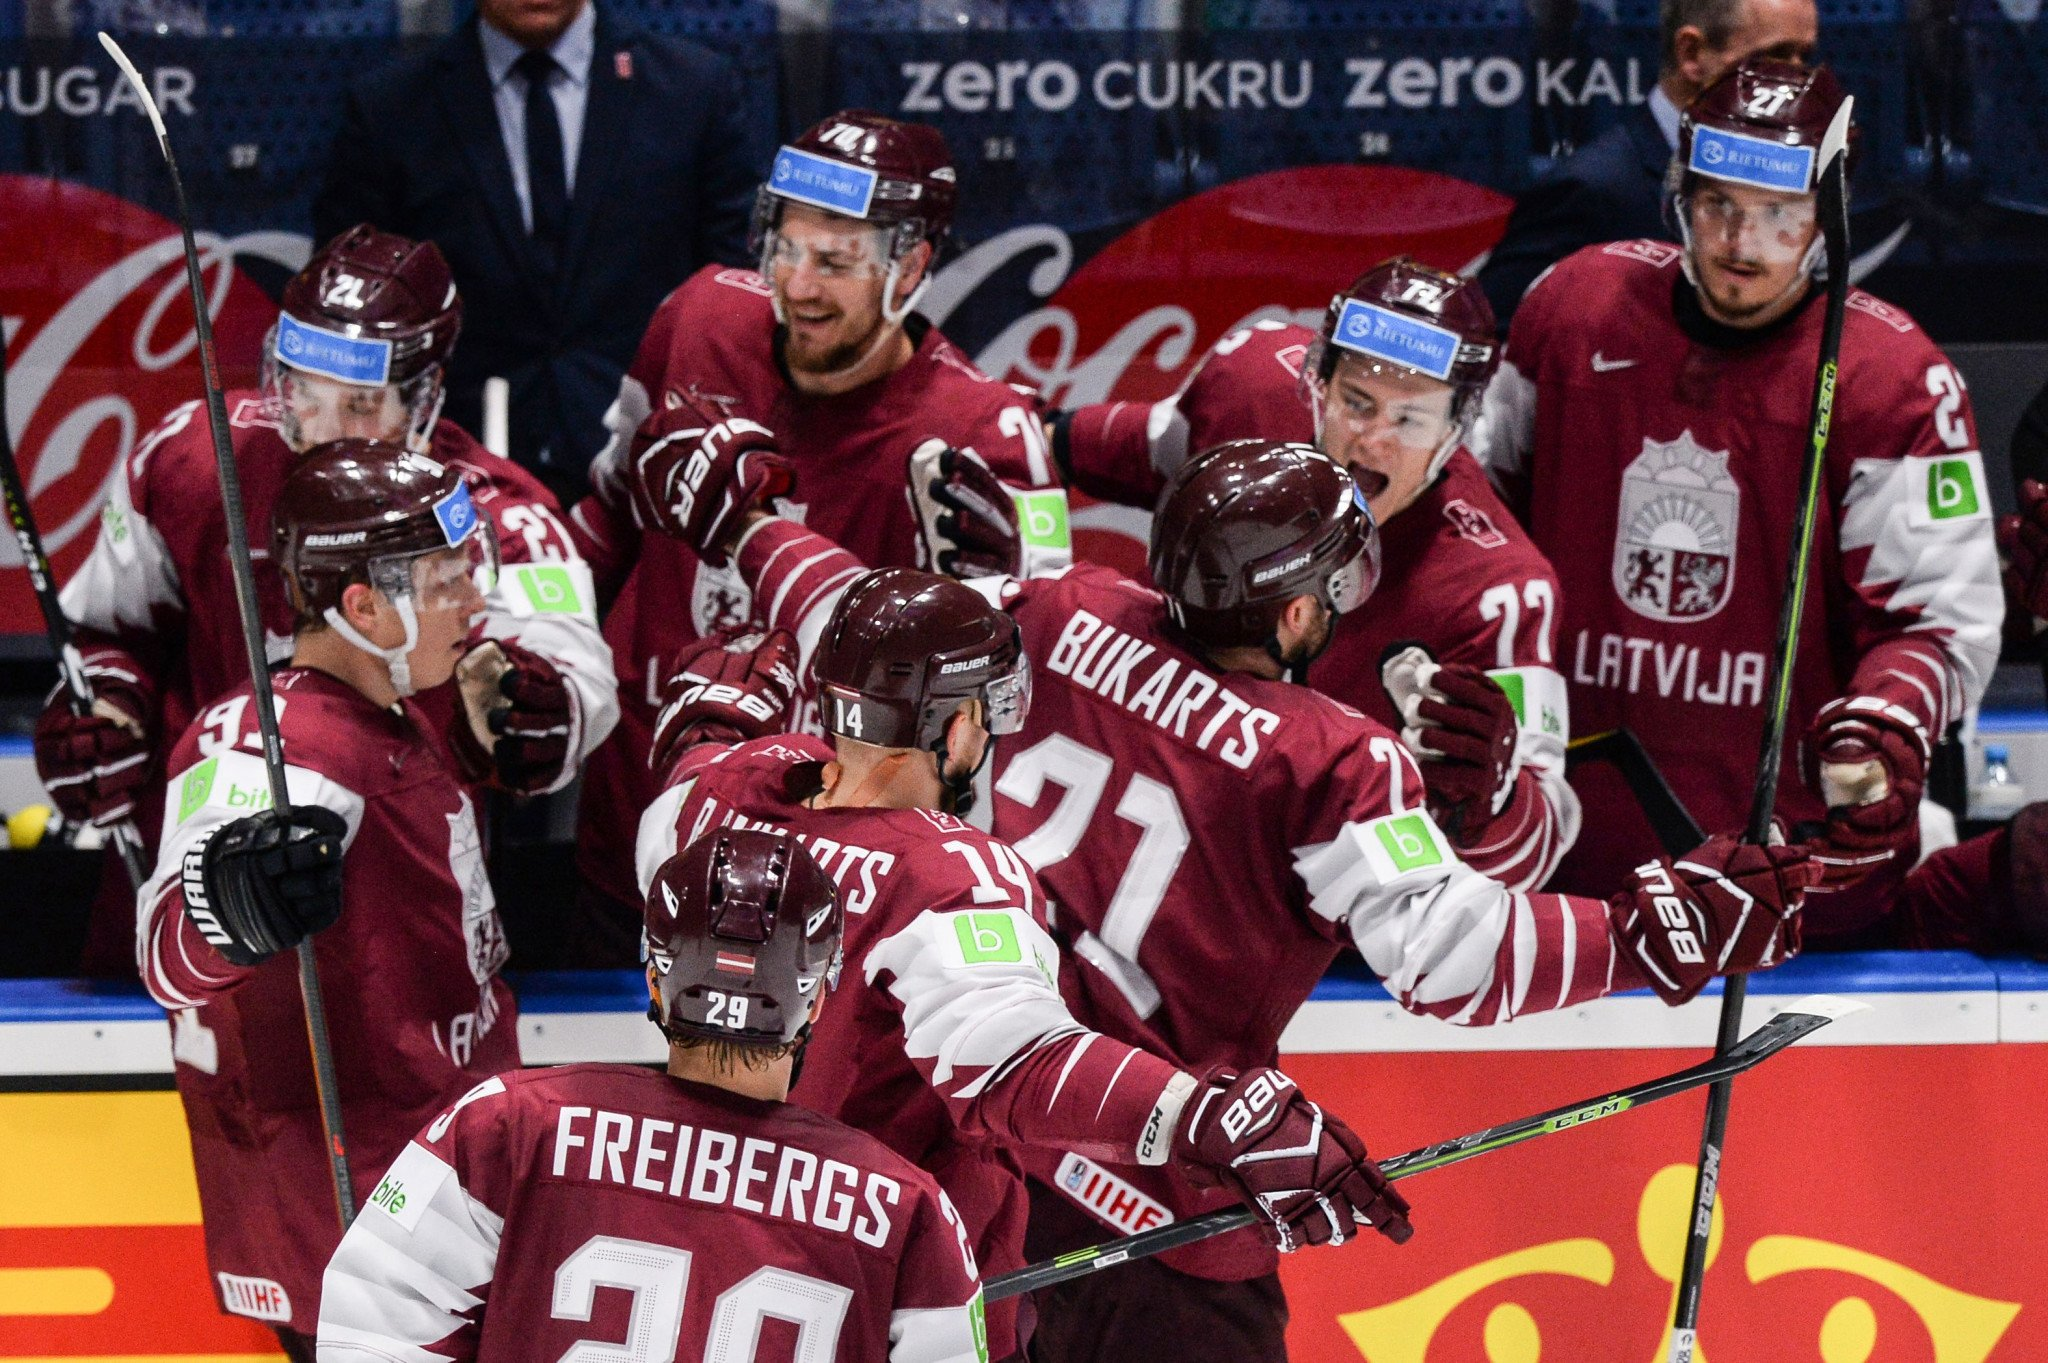 IIHF visits Latvia as decision looms on 2021 Men's World Championship host